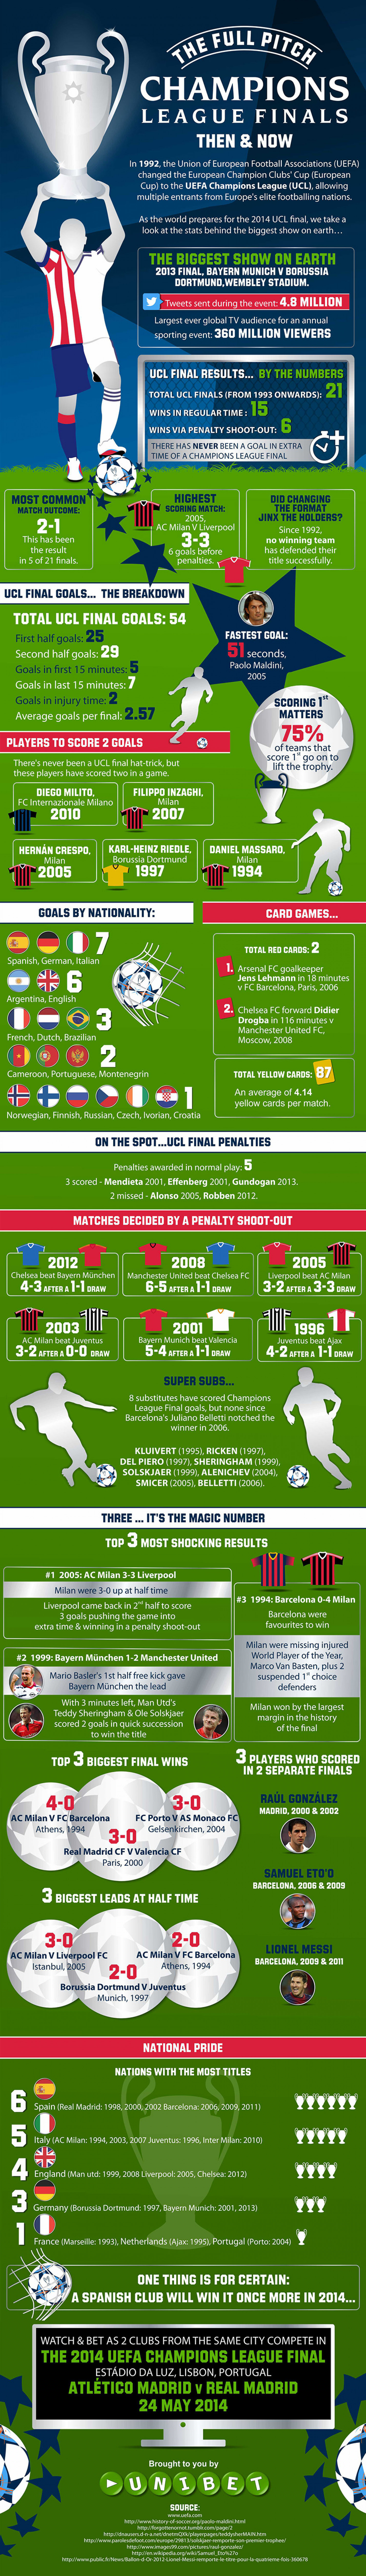 Champions League Finals Then & Now Infographic